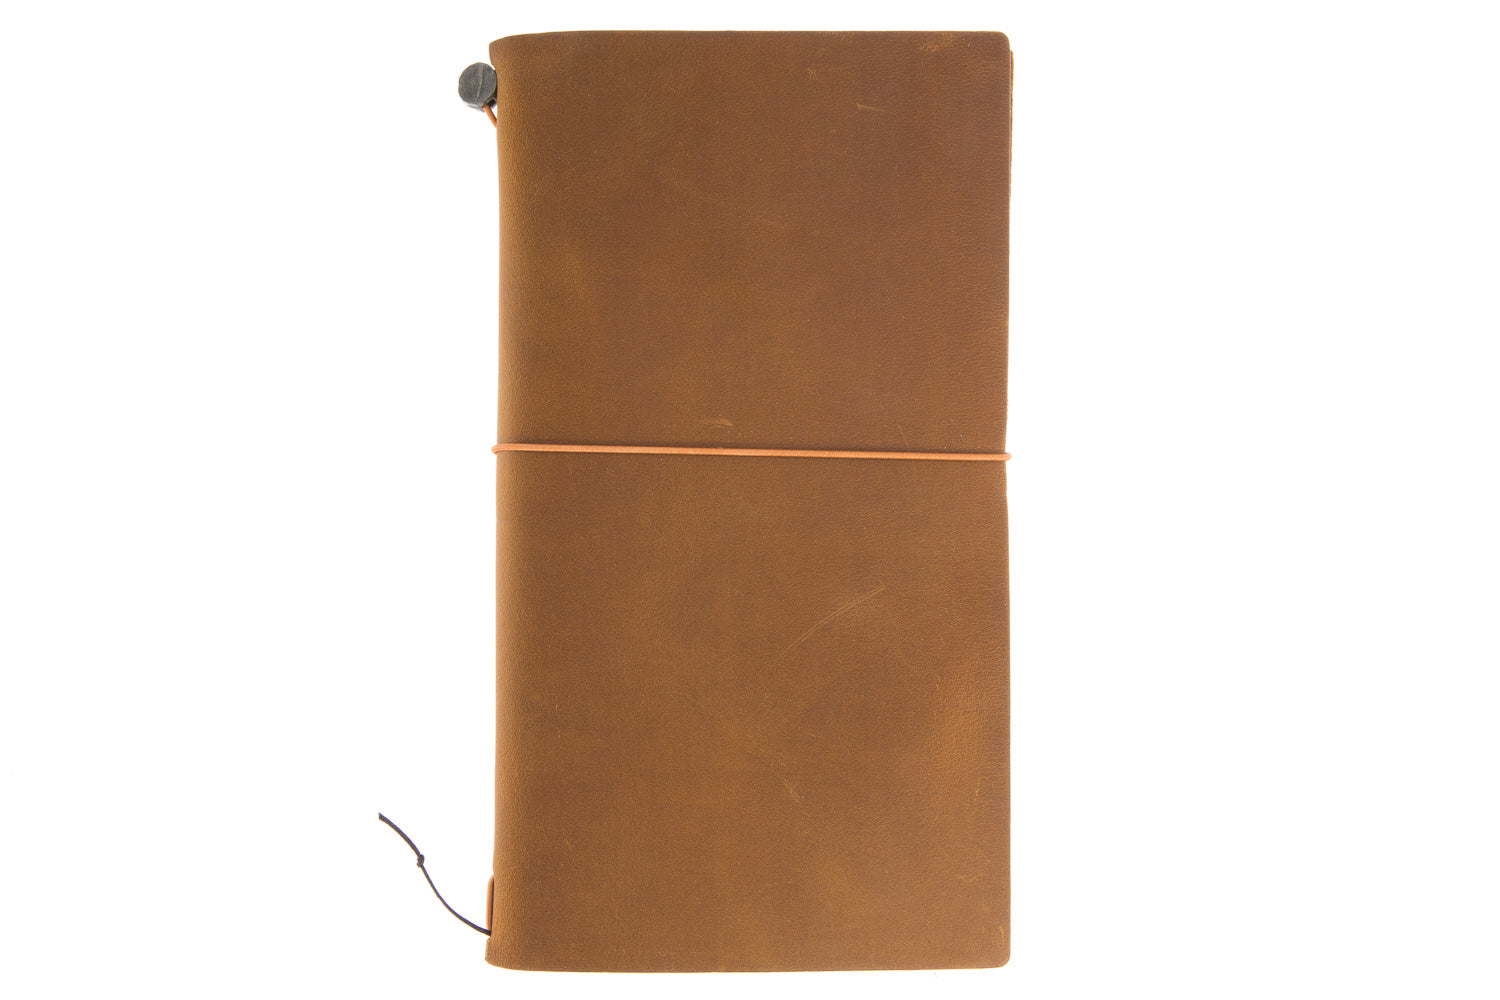 Traveler's Notebook - Camel (Regular)